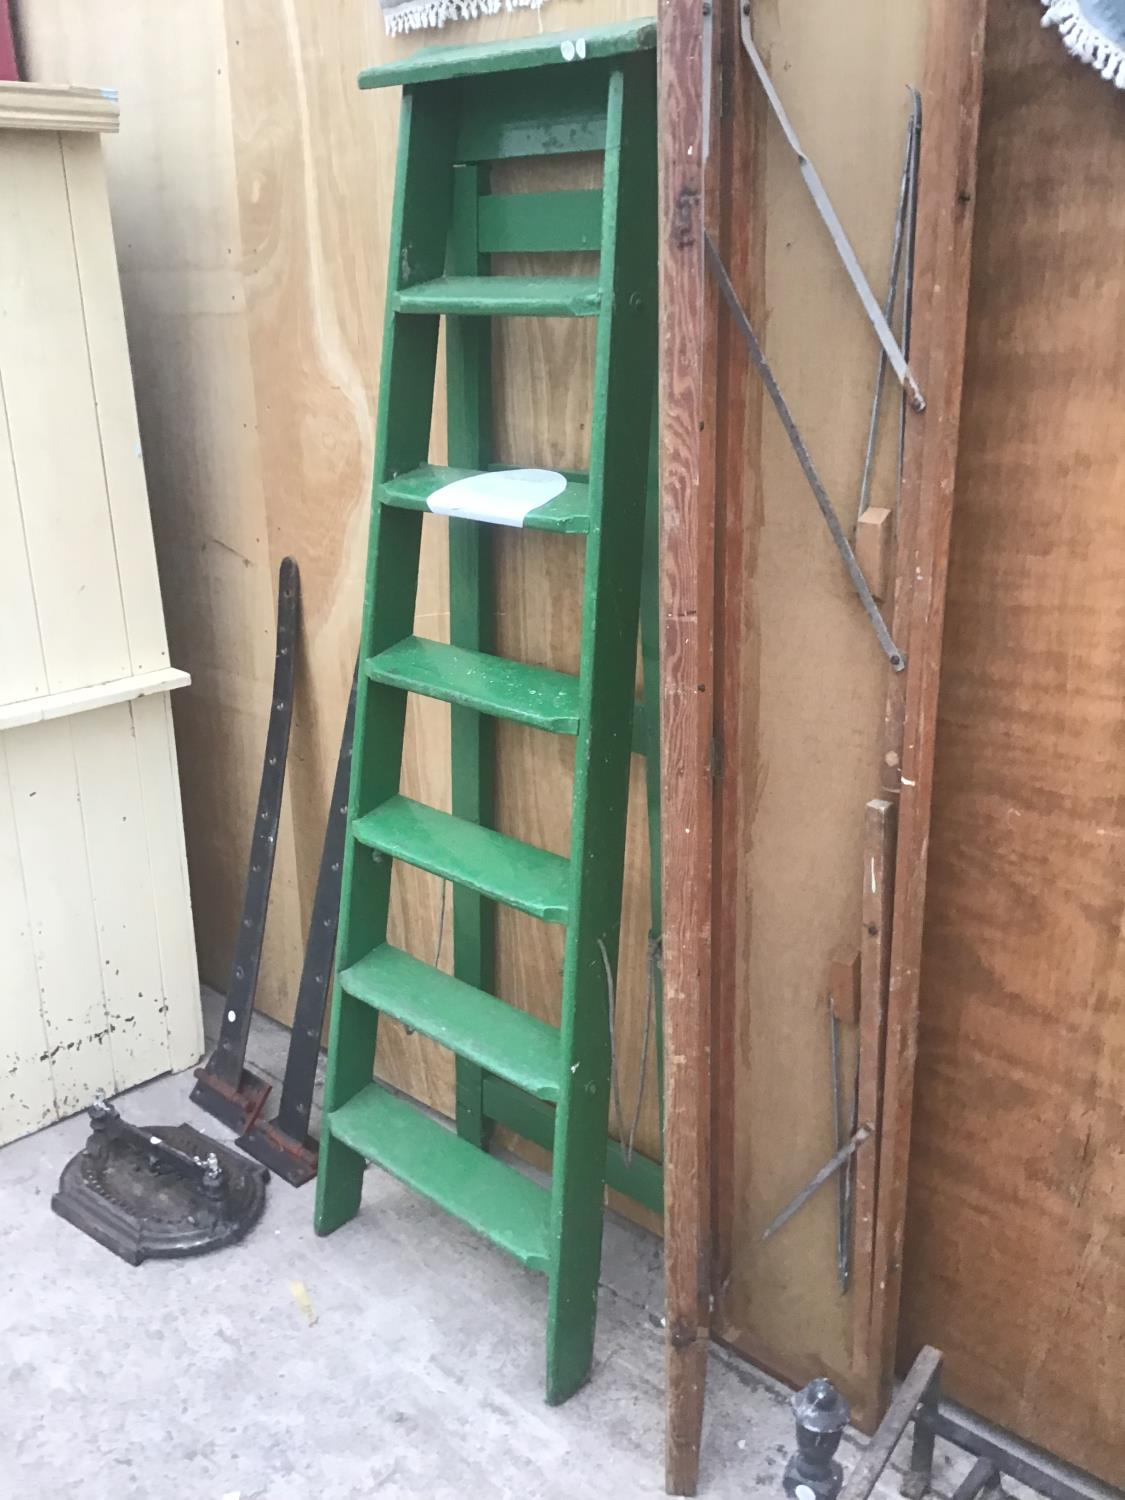 A VINTAGE SIX STEP GREEN PAINTED WOODEN STEP LADDER AND A VINTAGE FOLDING WOODEN TABLE